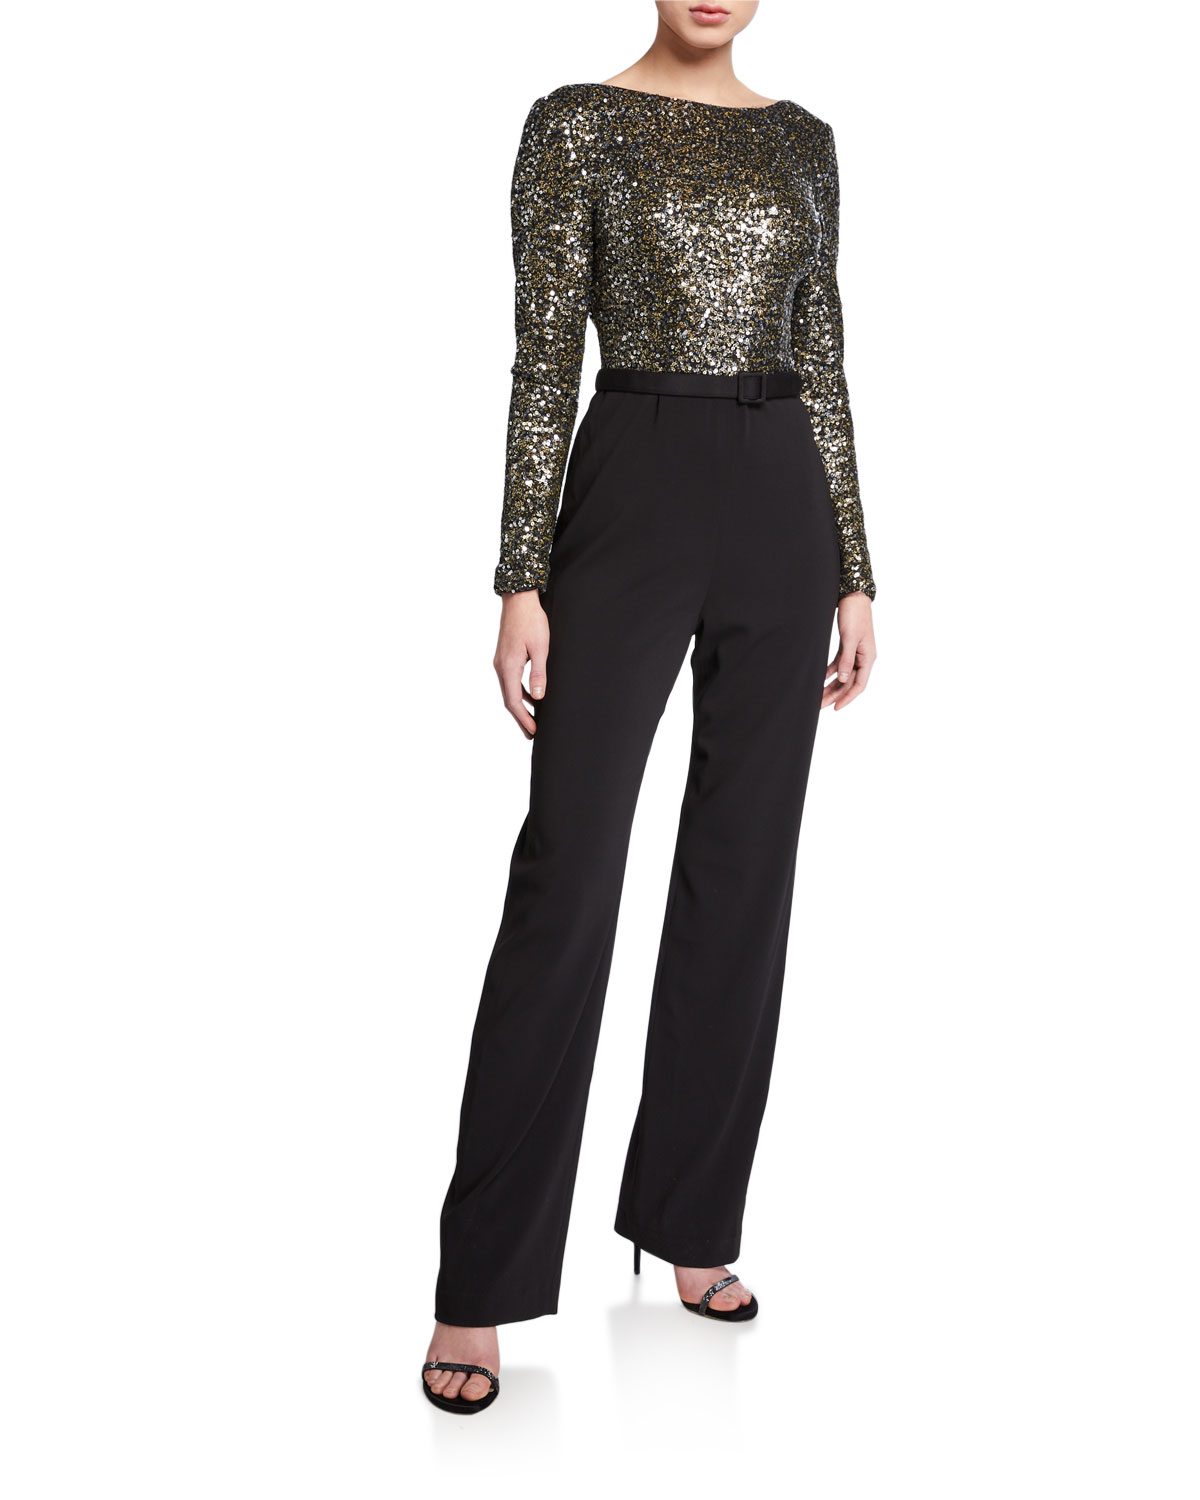 Badgley Mischka Suits SEQUIN LONG-SLEEVE COWL-BACK BELTED JUMPSUIT